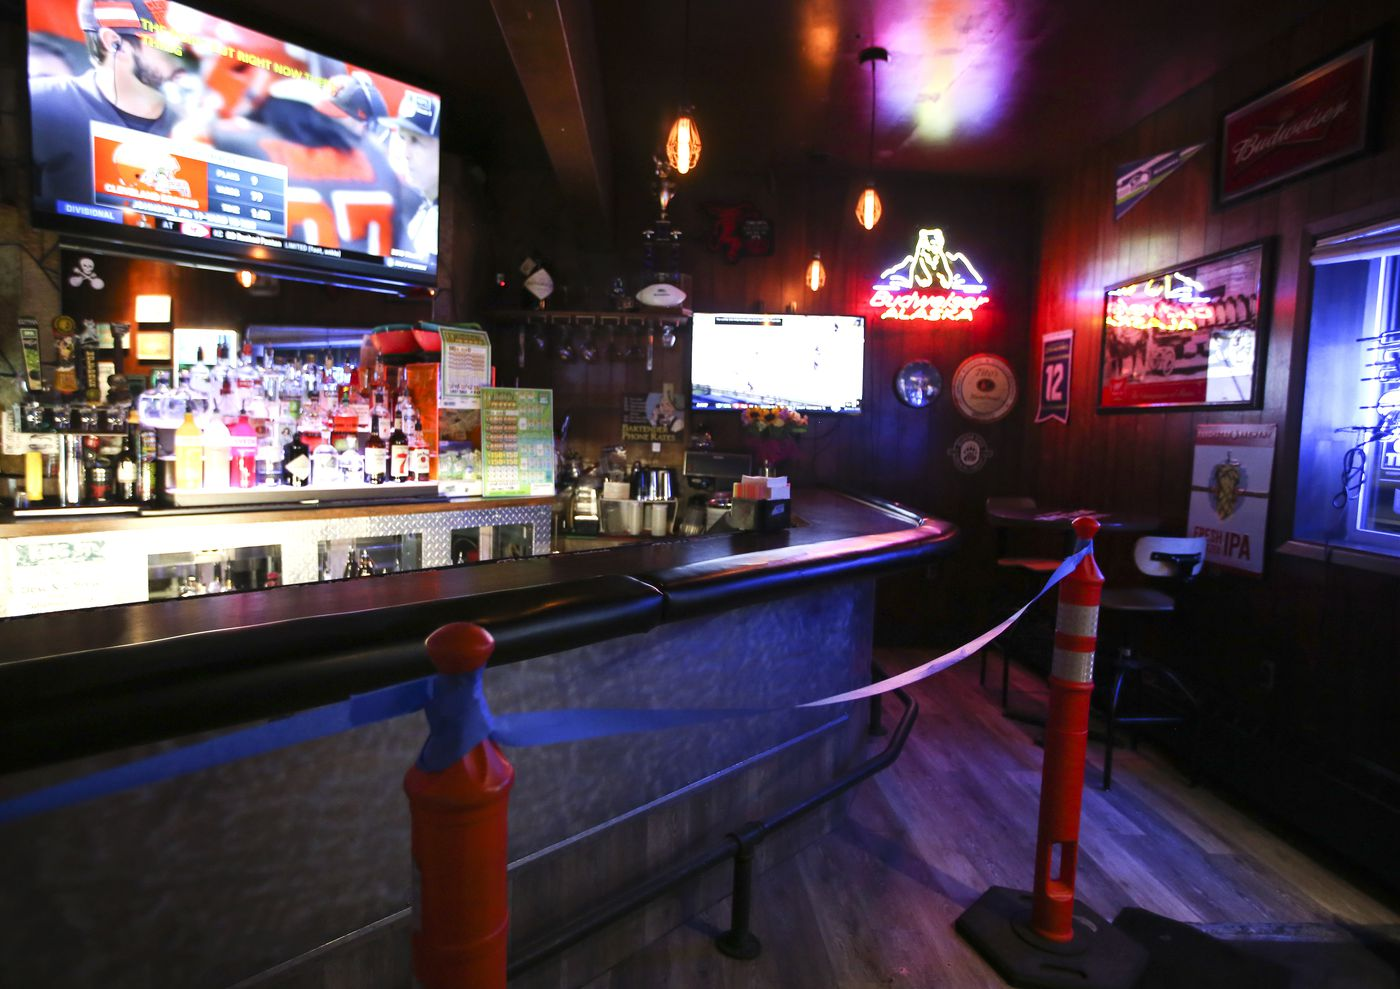 Tape blocks off the bar area at Van's Dive Bar in downtown Anchorage on Thursday, Jan. 14, 2021. (Emily Mesner / ADN)